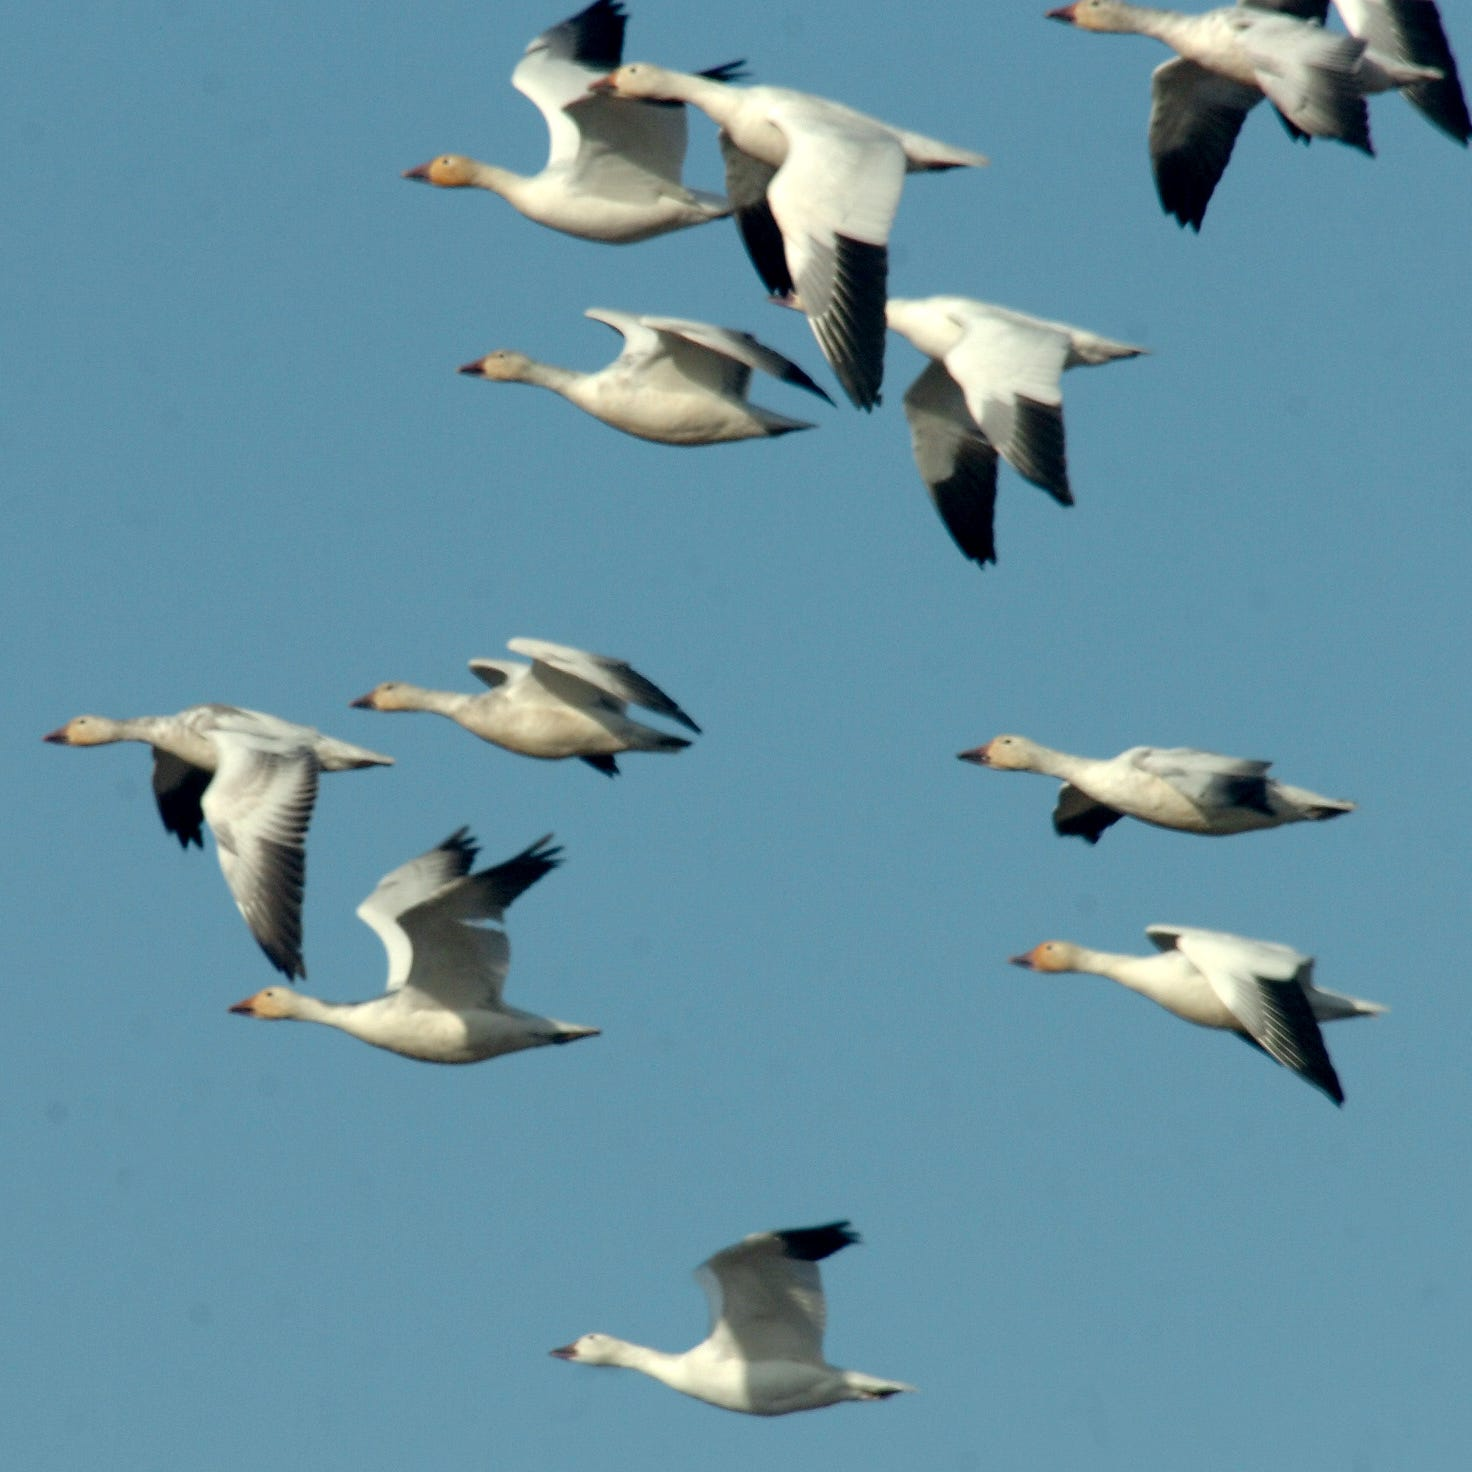 Information sought on snow geese killed at Elk Creek Colony BMA